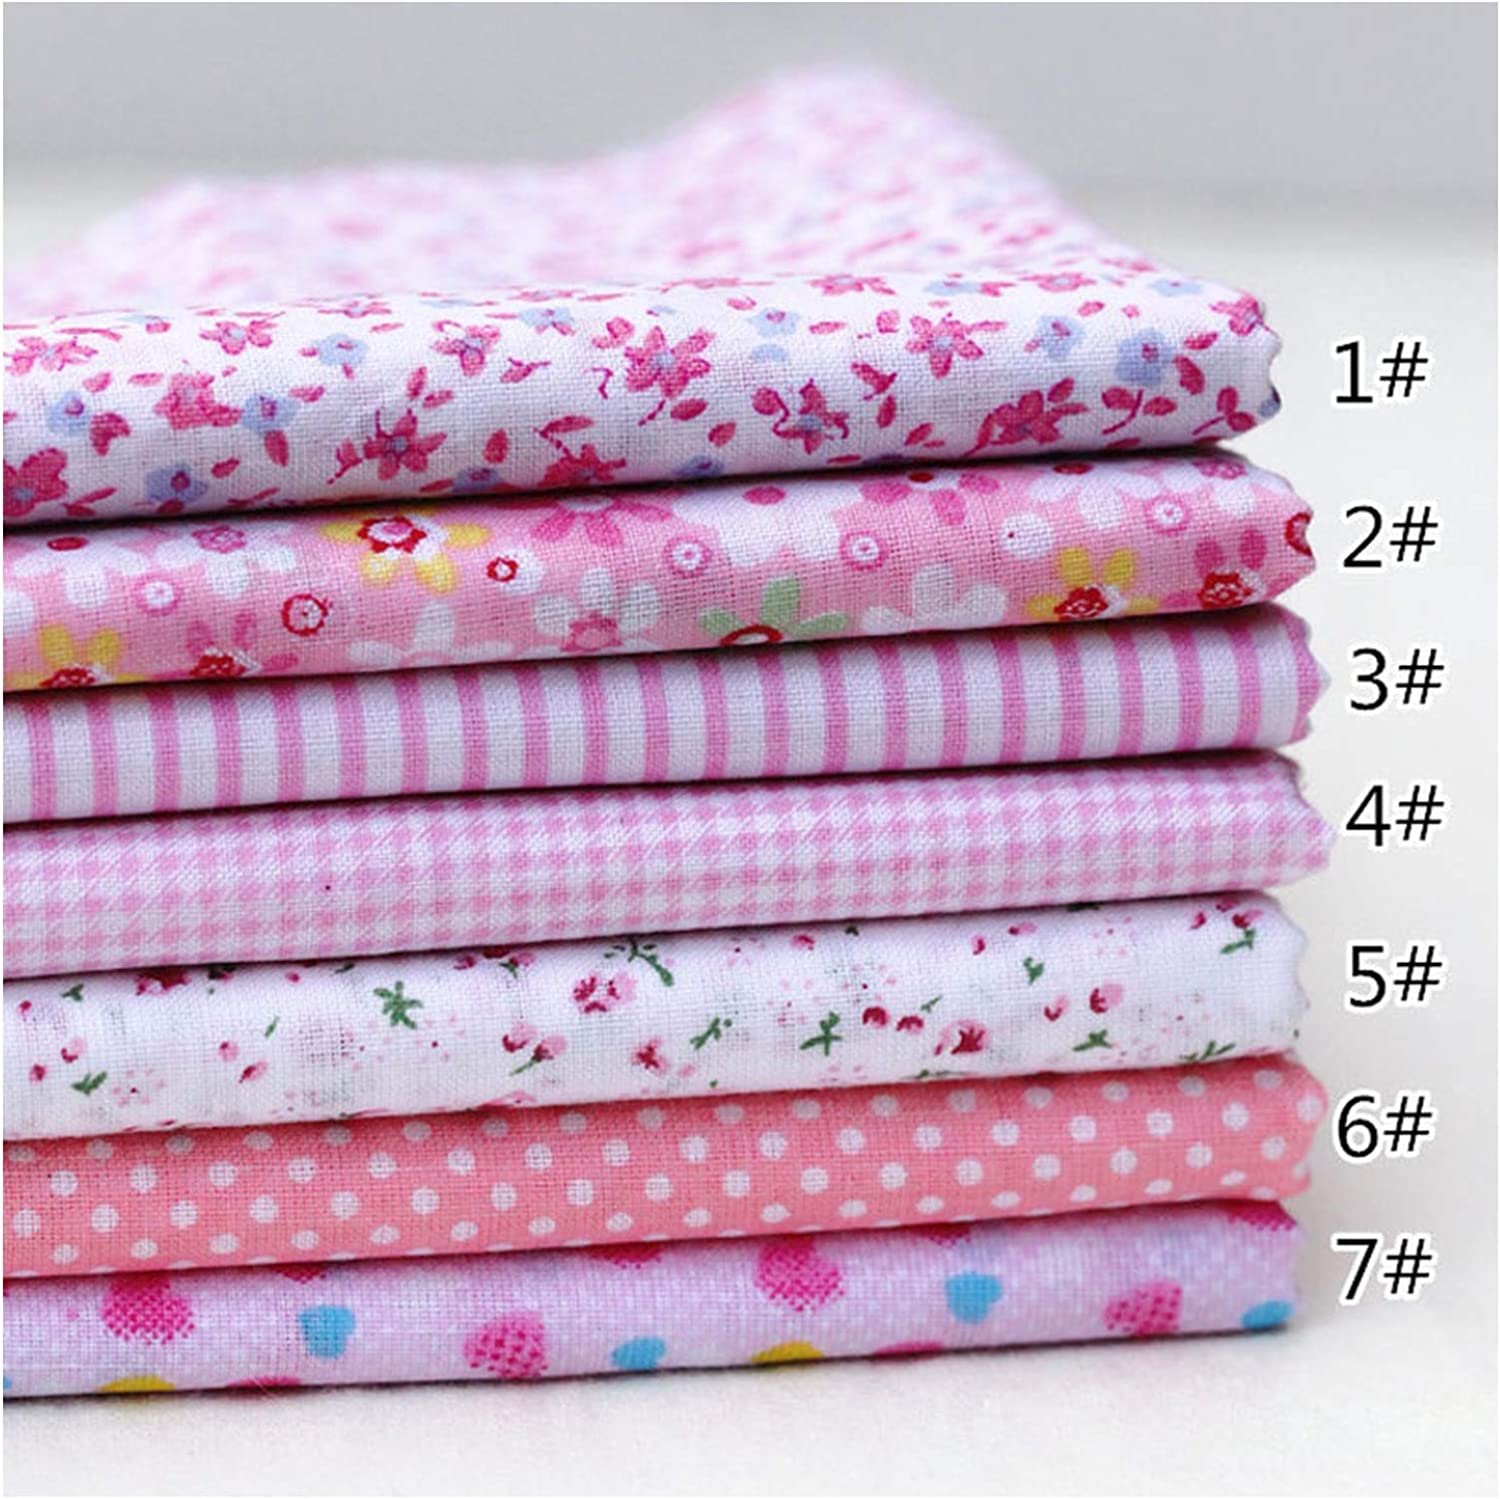 Mixed Style Cloth Material Handmade DIY 100/% Cotton Fabric Kids Floral Print Sewing Patchwork,Orange